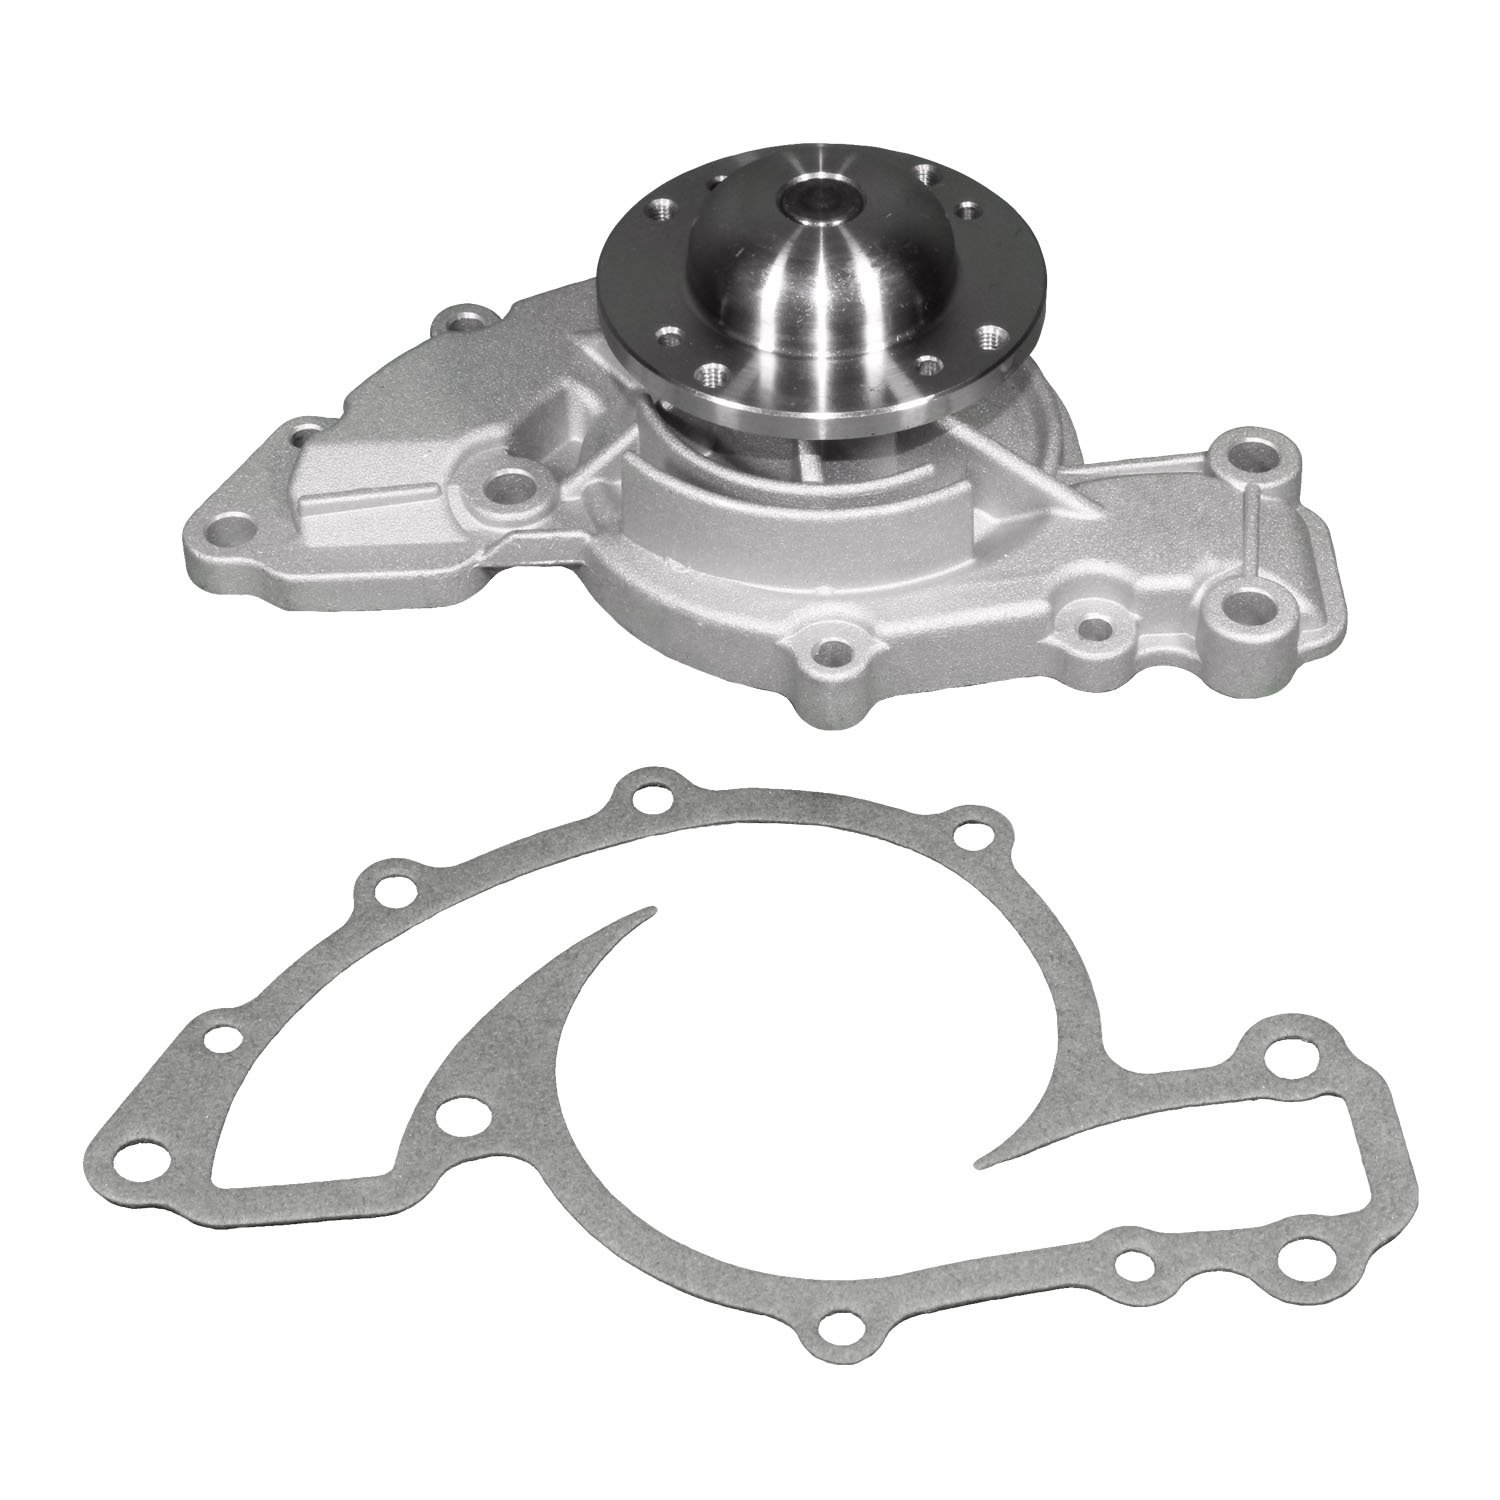 ACDelco 252-693 Professional Water Pump Kit